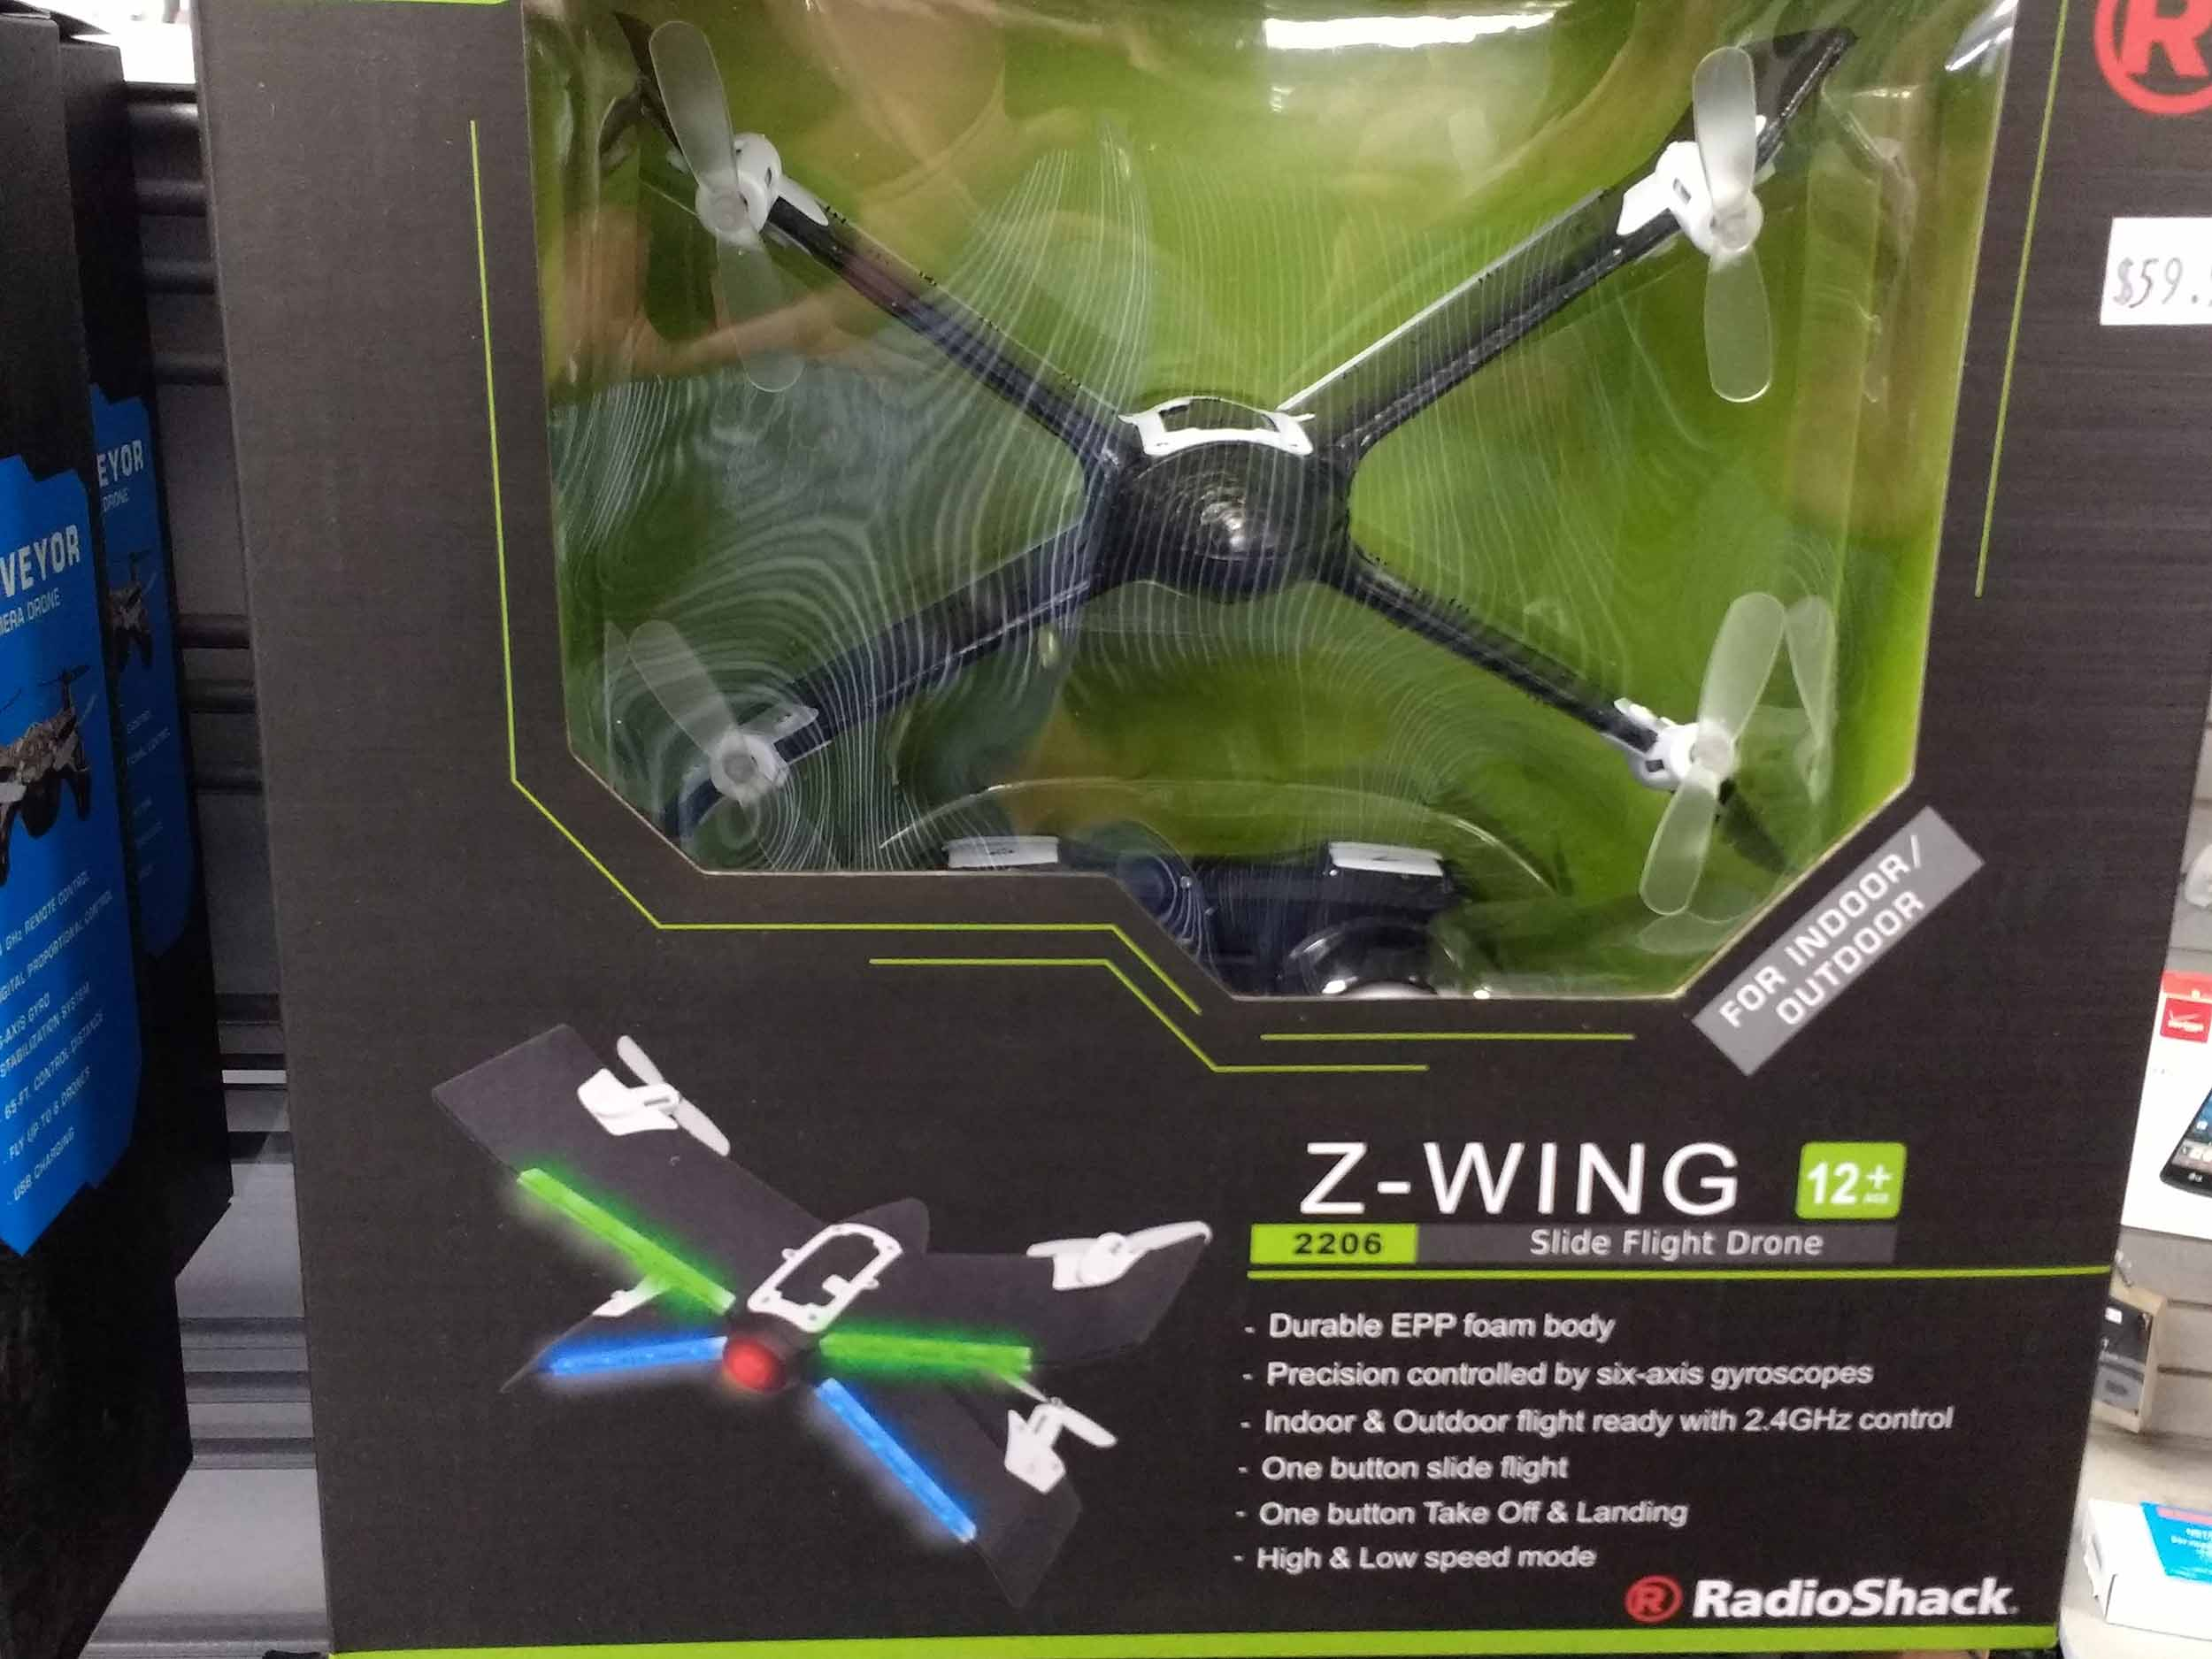 Z wing drone features multicolored LEDs.